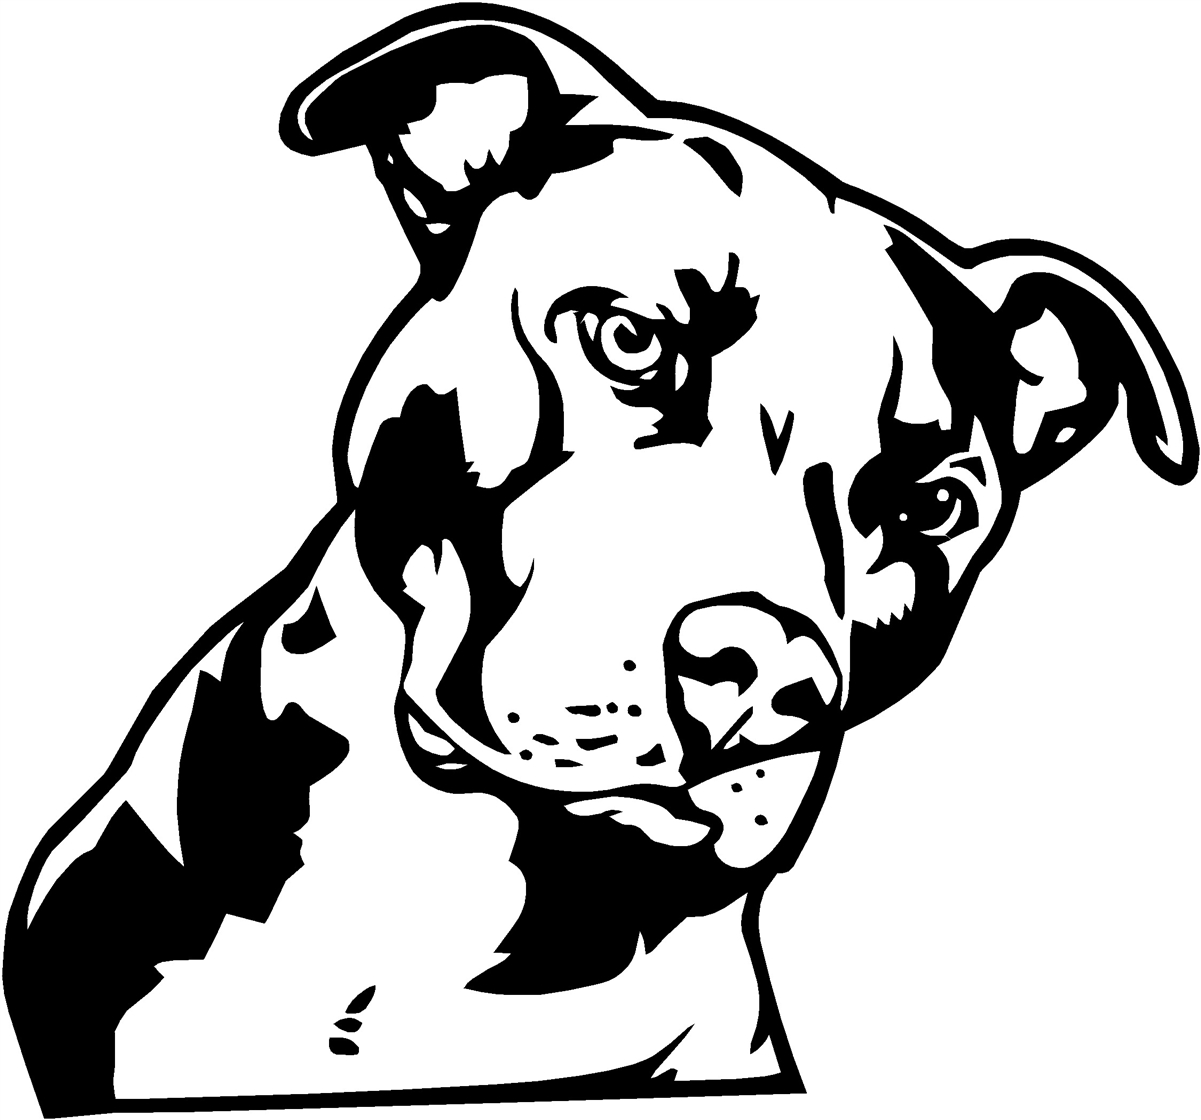 Bull clipart friendly Clipart clipart Pitbull angry Savoronmorehead